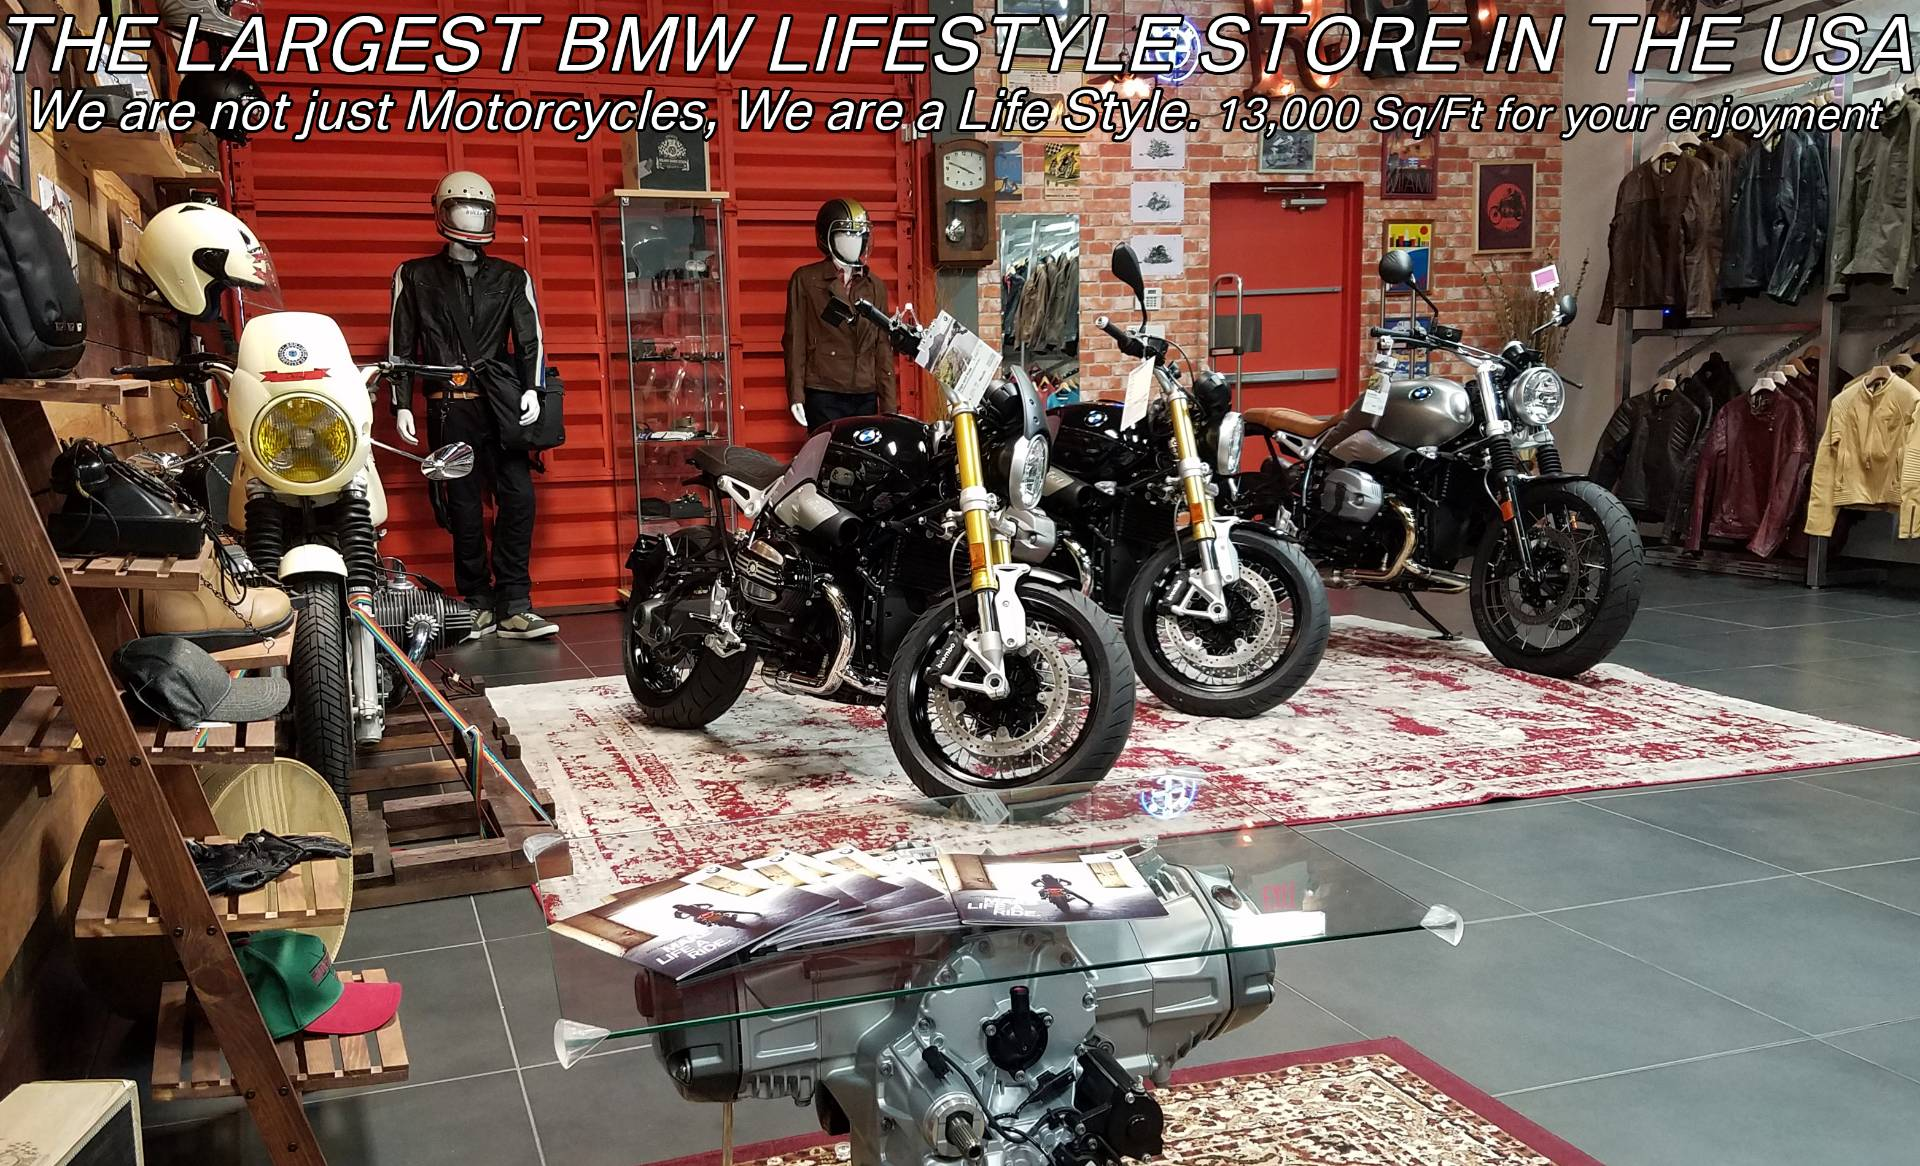 Used 2017 BMW R nine T For Sale, Pre owned BMW R nineT For Sale, BMW Motorcycle RnineT, BMW Motorcycles of Miami, Motorcycles of Miami, Motorcycles Miami - Photo 30